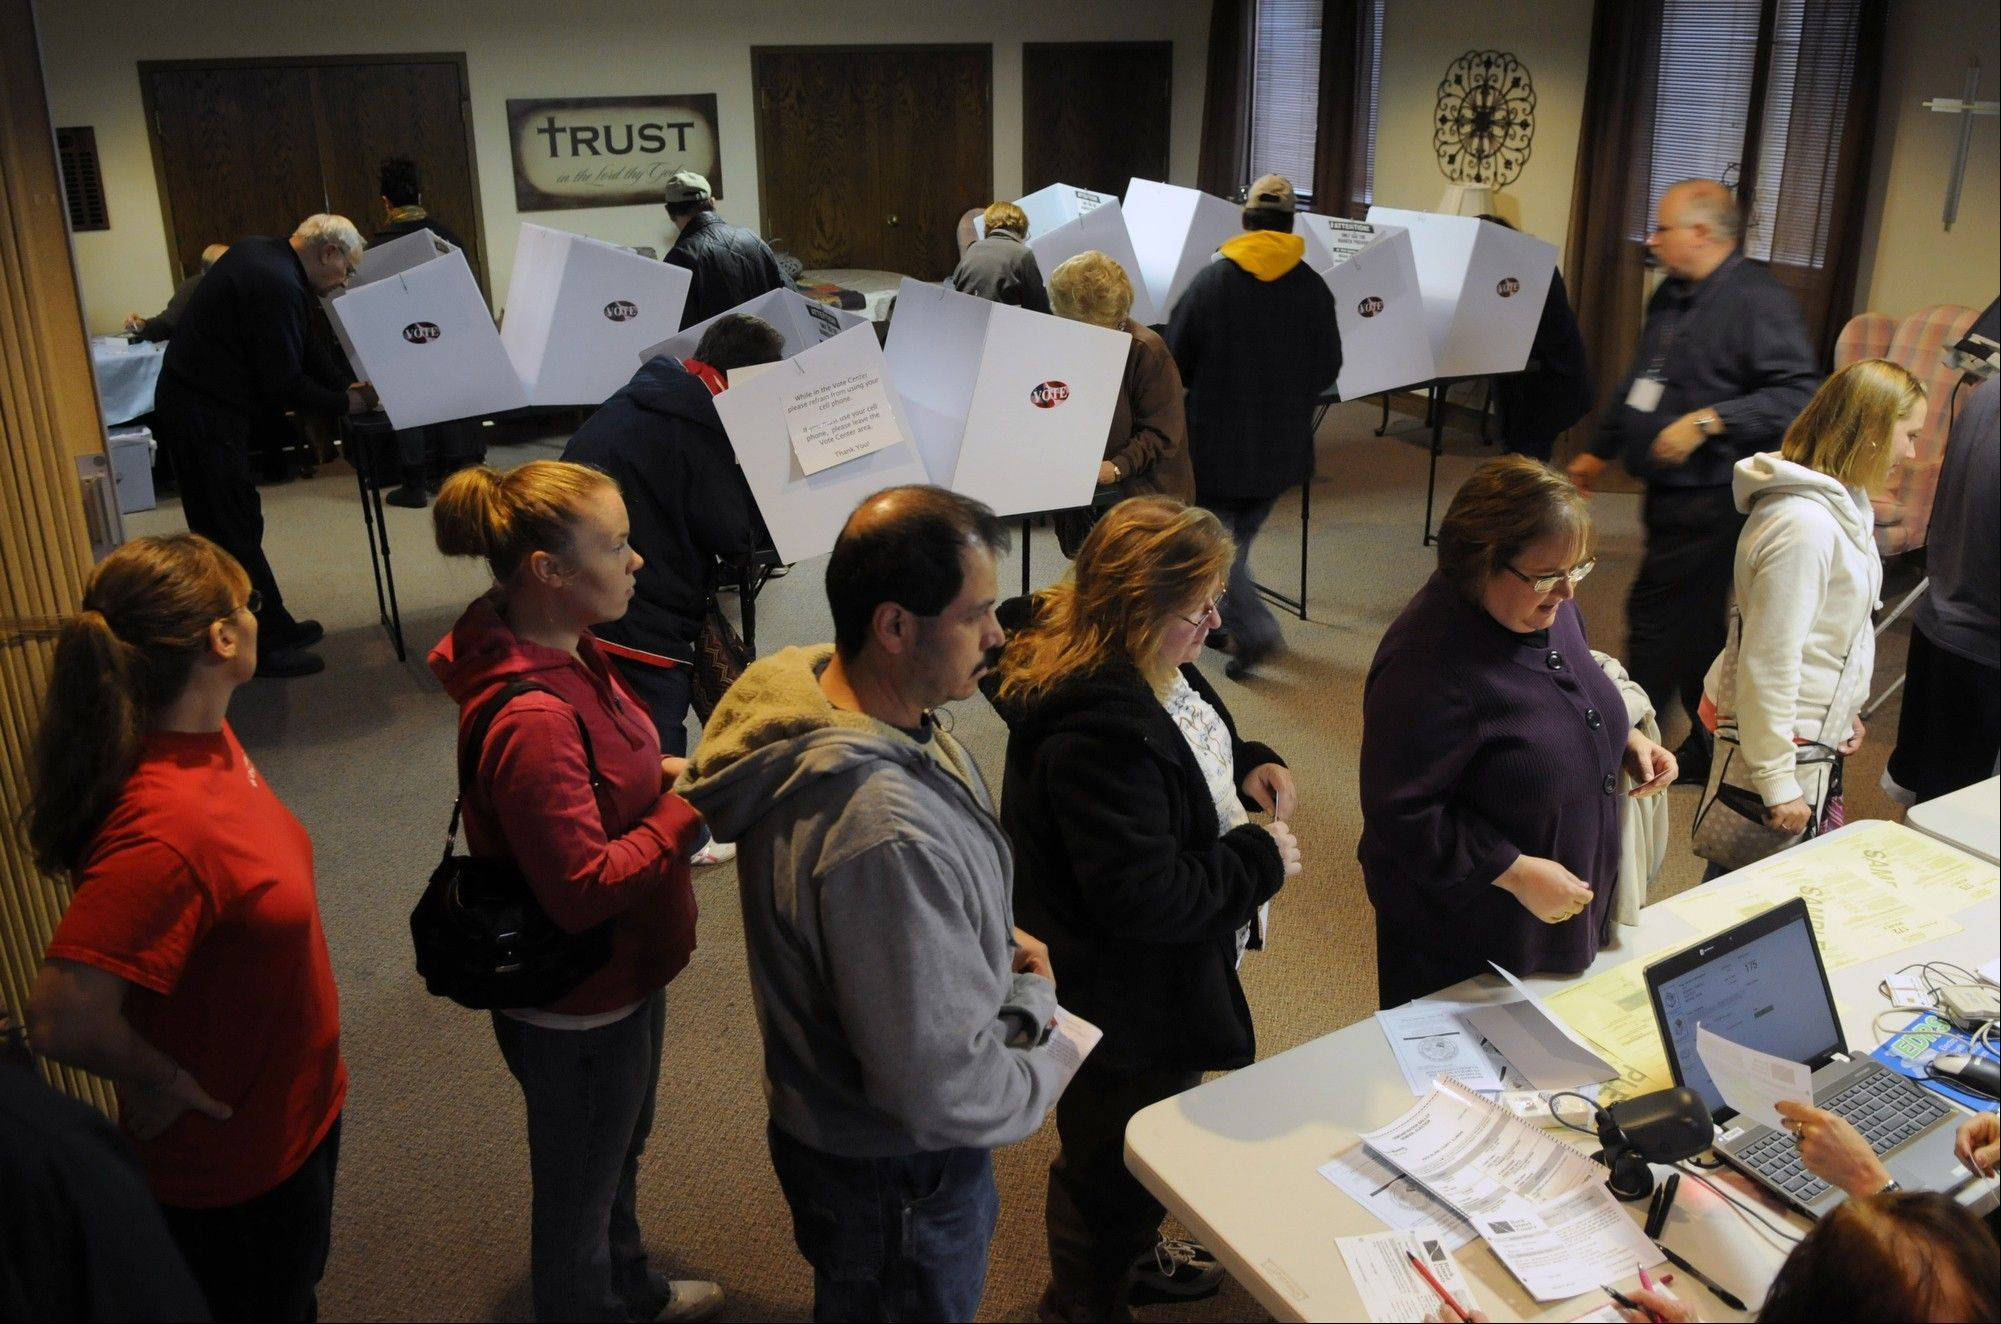 Voters pack the polling place at First Christian Church, 1826 16th Street in Moline, Ill. on Tuesday Nov. 6, 2012.